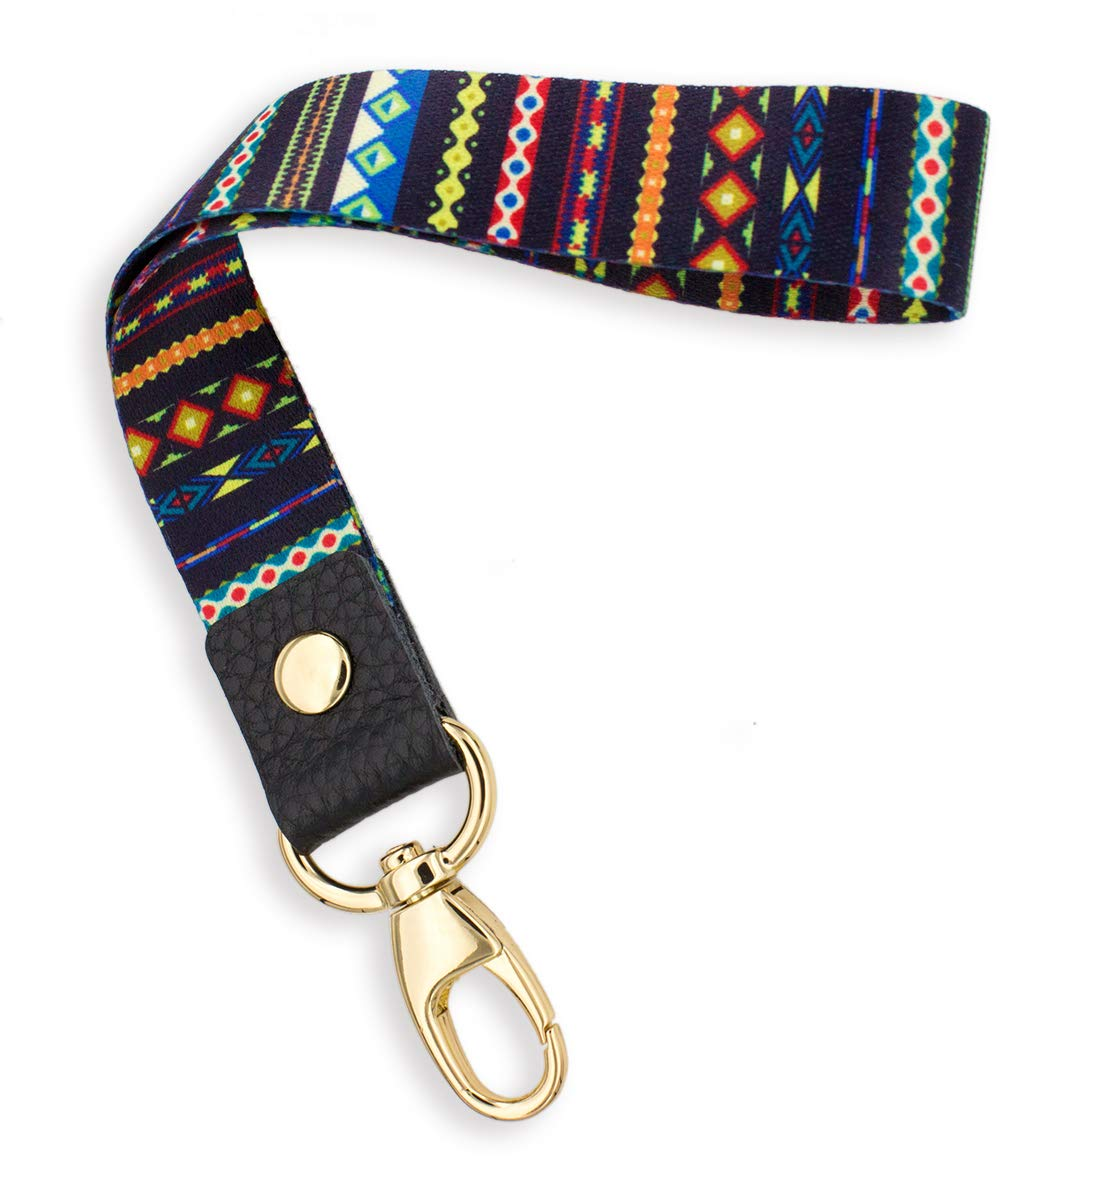 SENLLY Trib Vintage Hand Wrist Lanyard Premium Quality Wristlet Strap with Metal Clasp and Genuine Leather, for Key Chain, Camera, Cell Mobile Phone, Charms, Lightweight Items etc